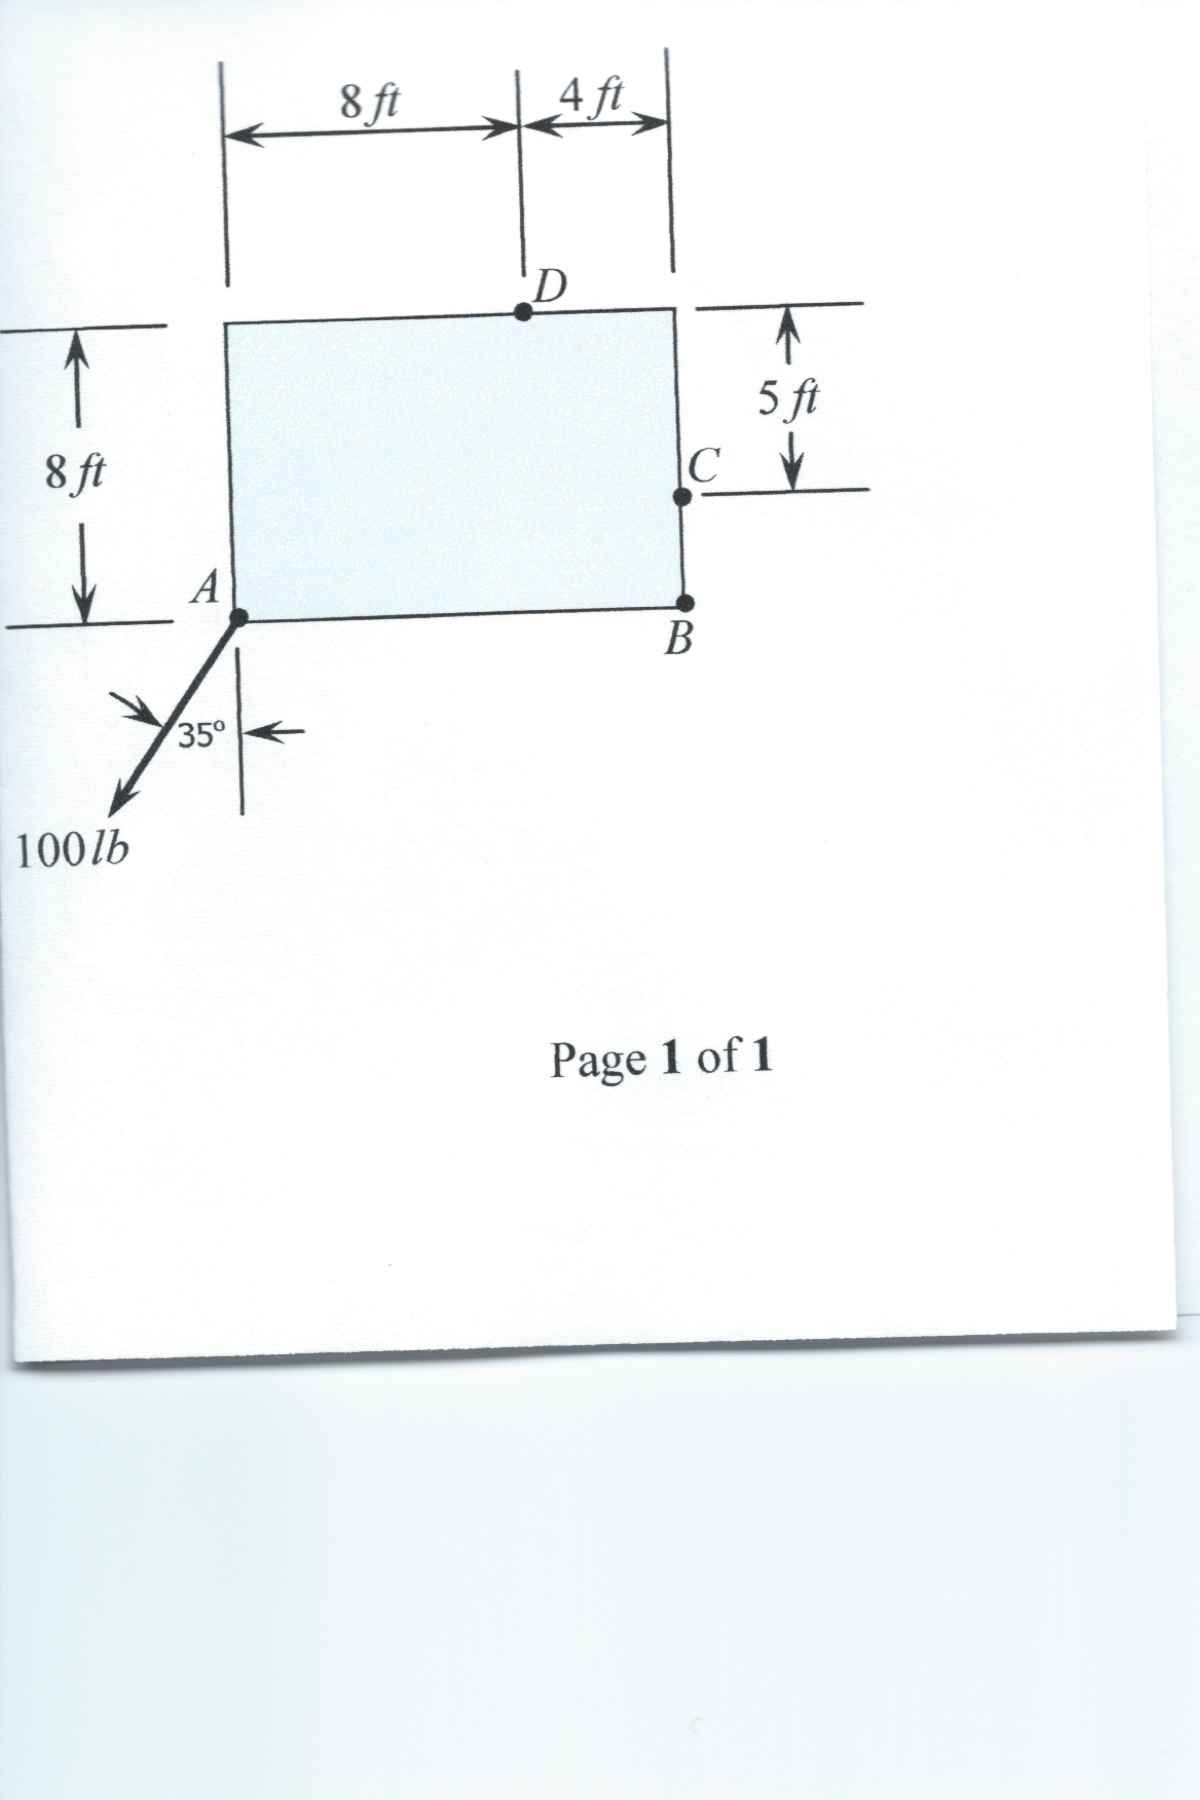 Problem 4-12. A 100lb force acts at A as shown on